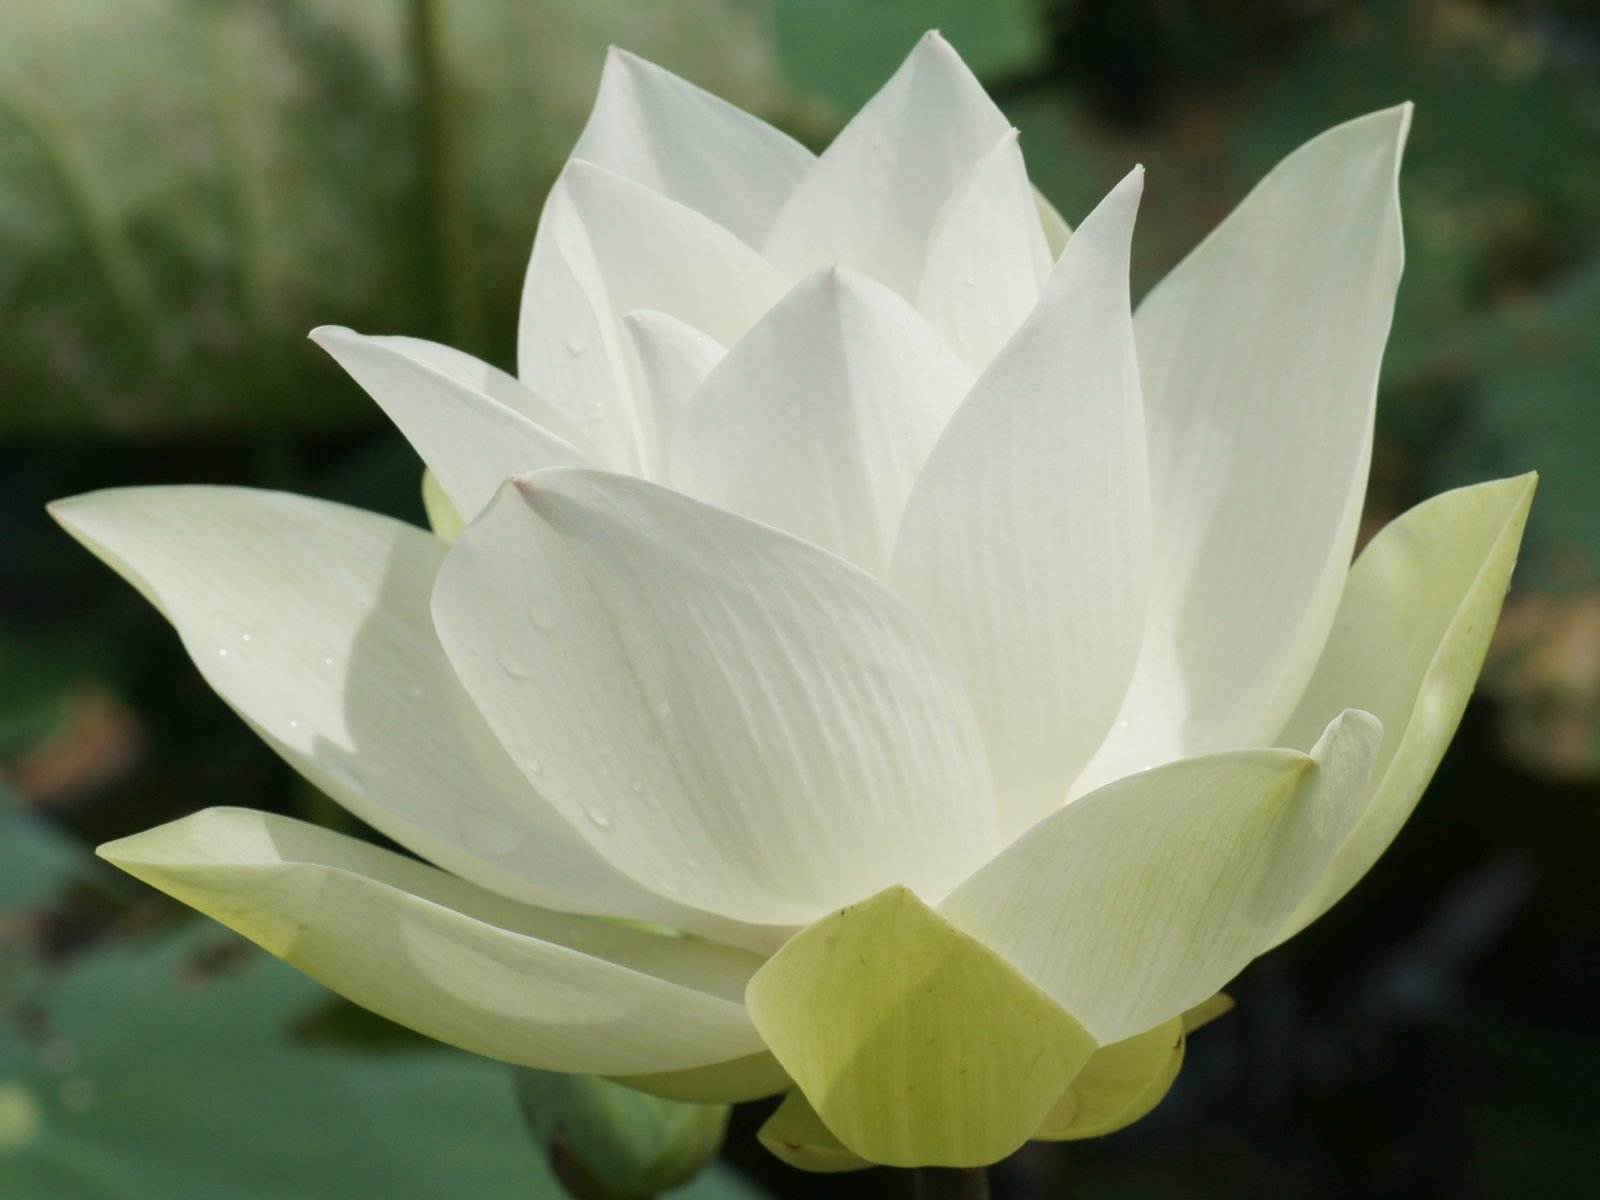 White lotus flower meaning and symbolism mythologian perhaps a large part of the reason that the white lotus was and is so revered in religious iconography is the colors symbolism as a blank canvas izmirmasajfo